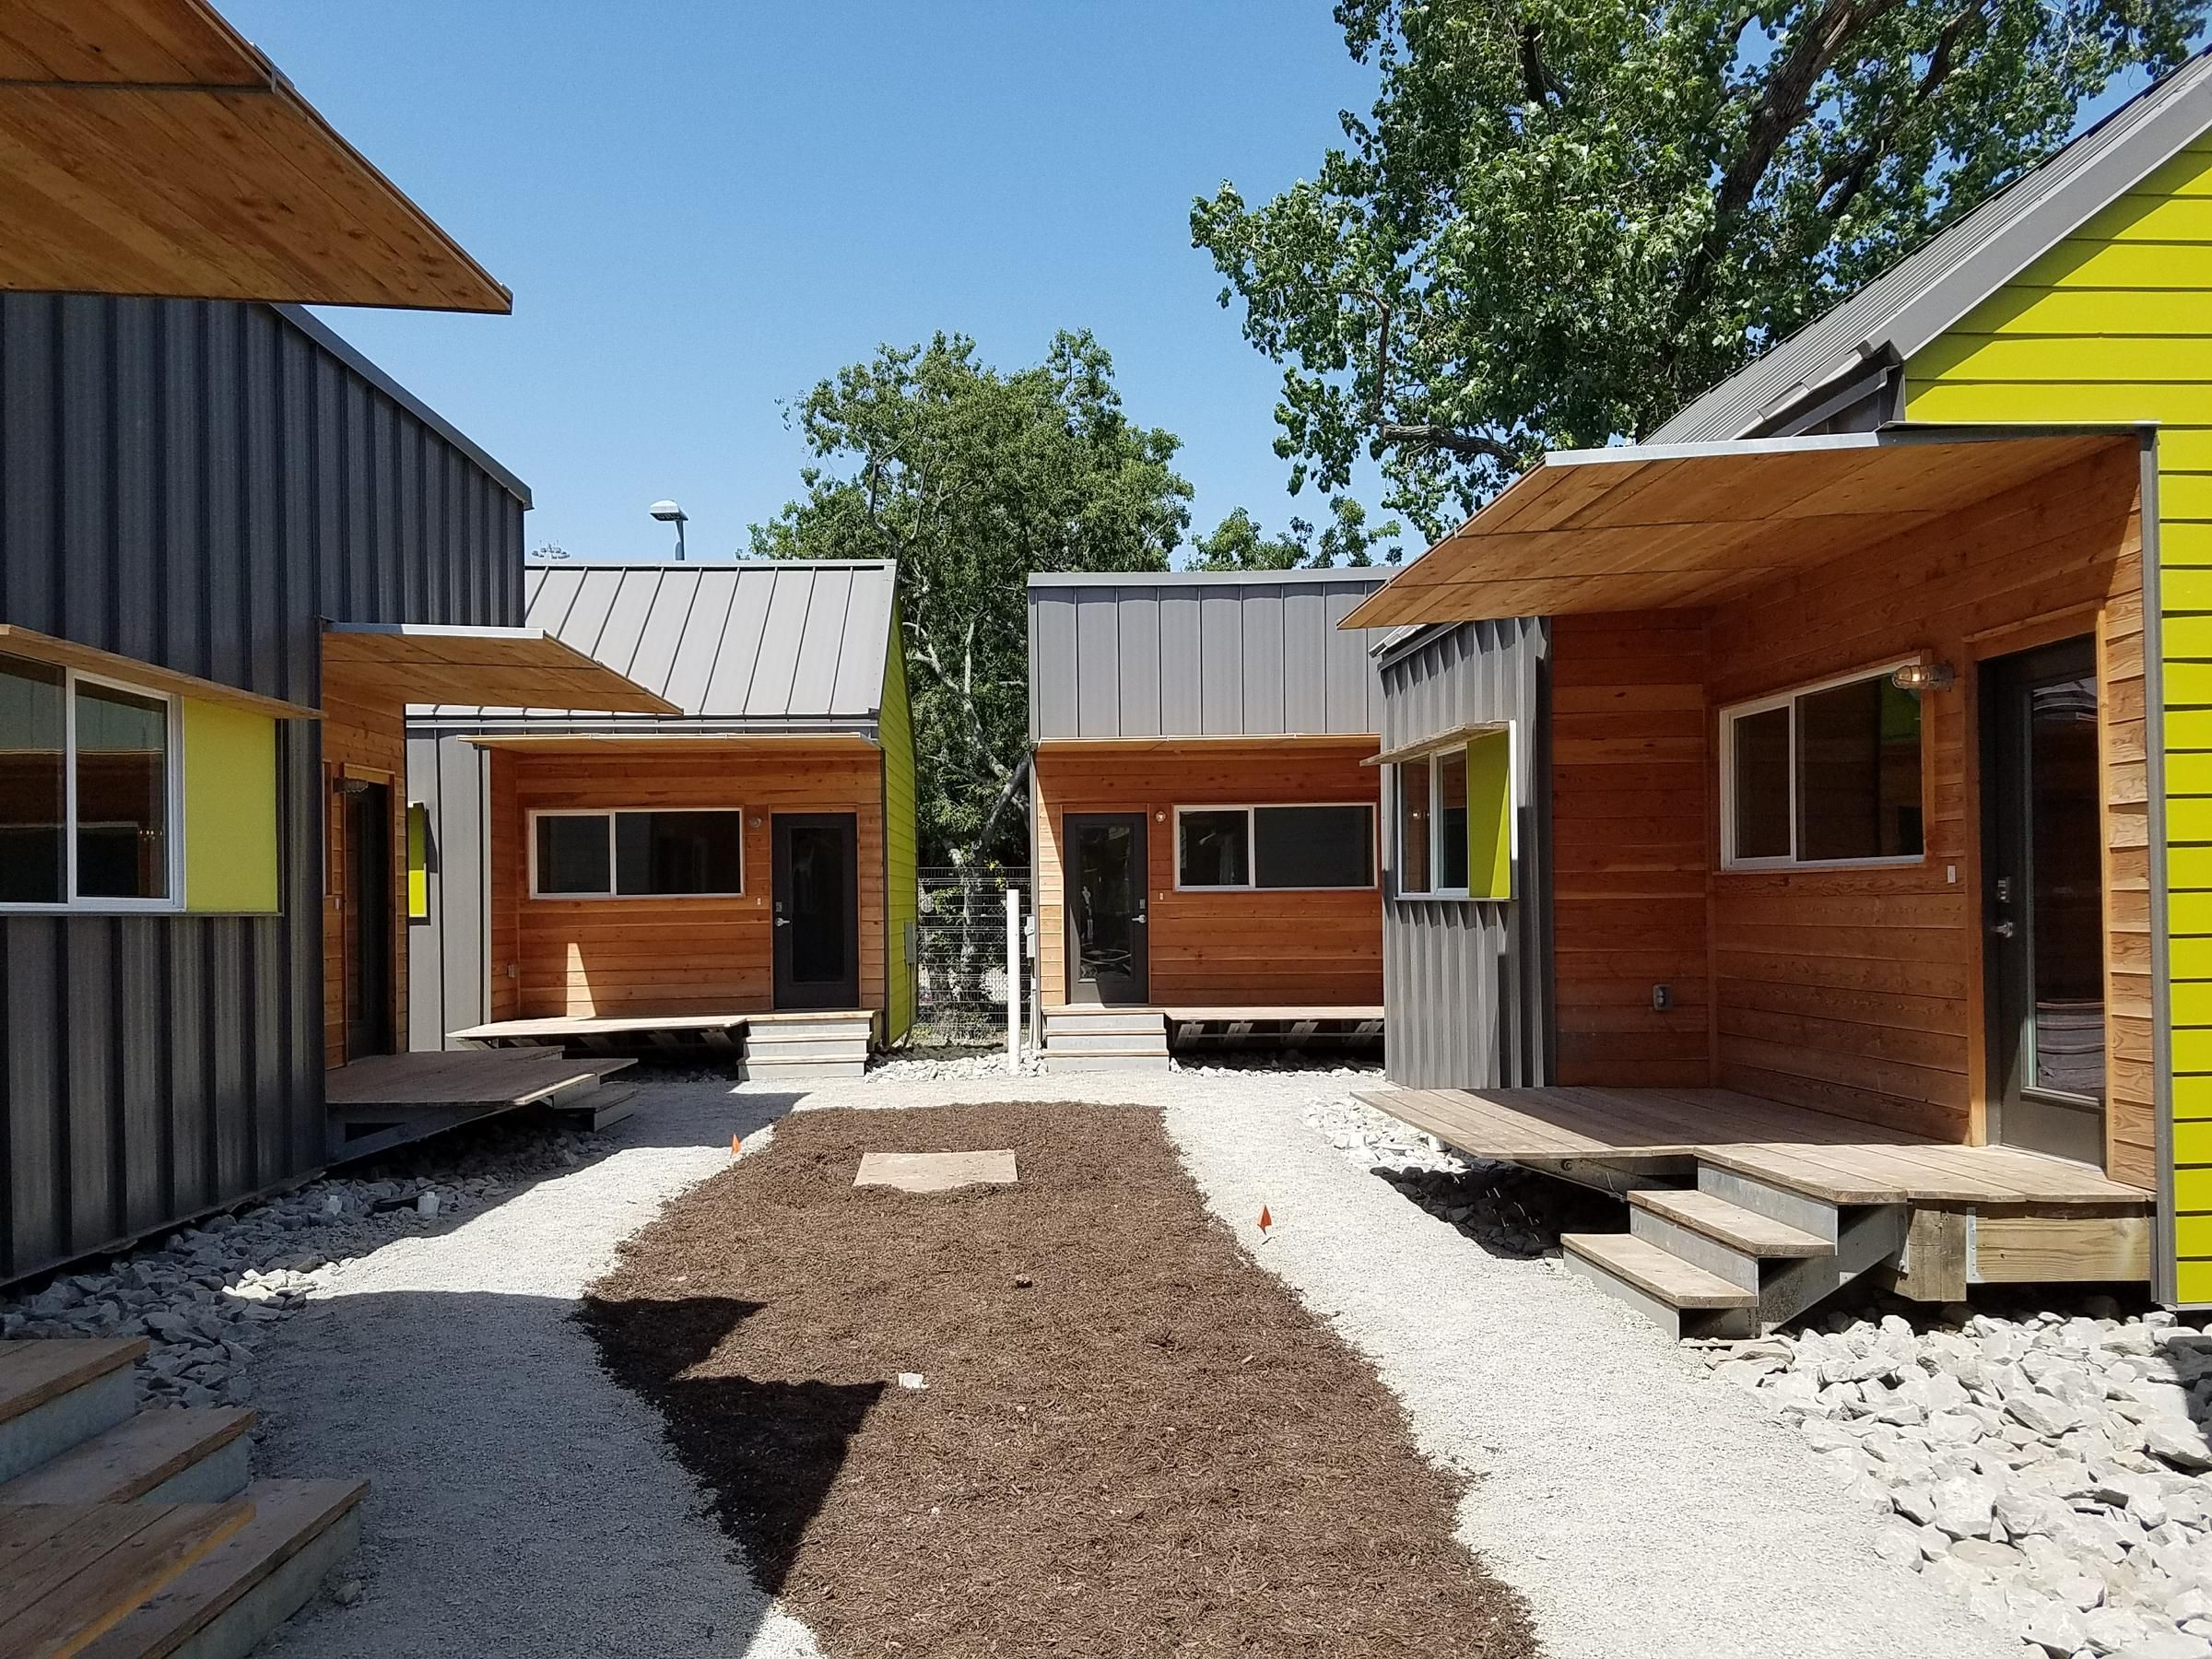 The Cottages At Hickory Crossing Are Designed To House The 50 Homeless People Tiny House Small Cottages Tiny House Plans